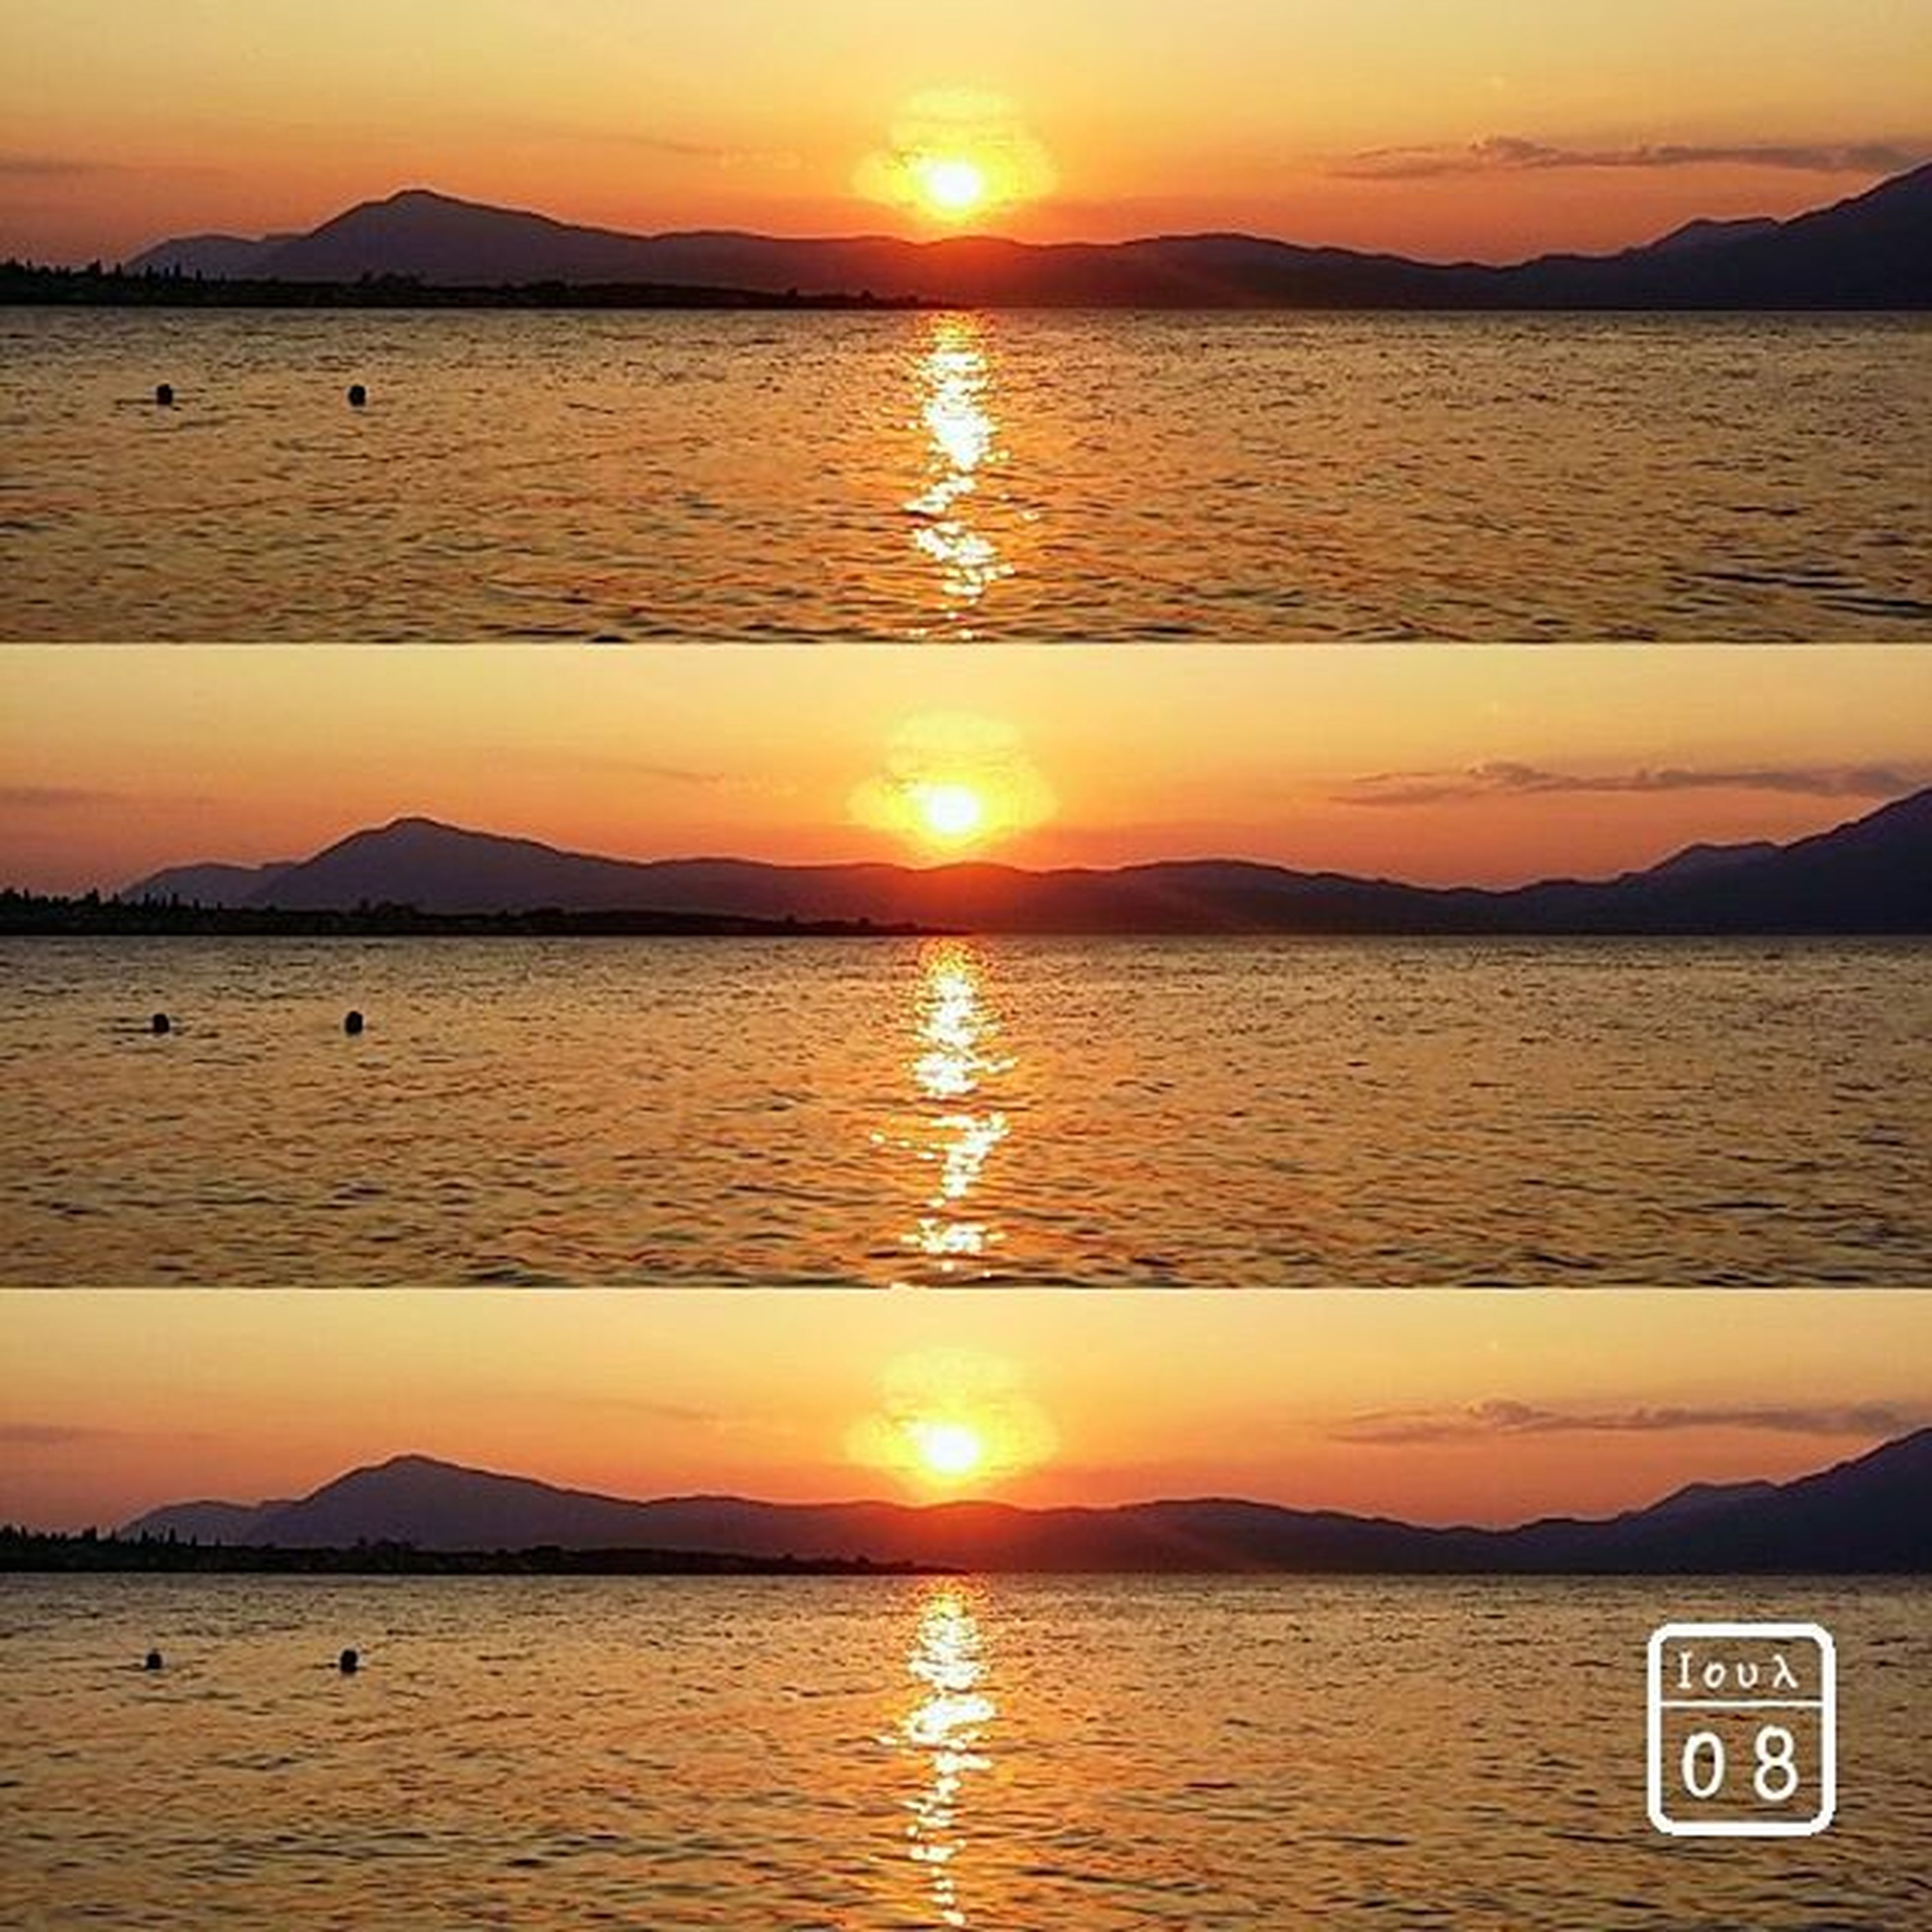 sunset, water, sun, scenics, tranquil scene, orange color, sea, reflection, beauty in nature, tranquility, mountain, silhouette, idyllic, sky, nature, sunlight, rippled, lake, beach, waterfront